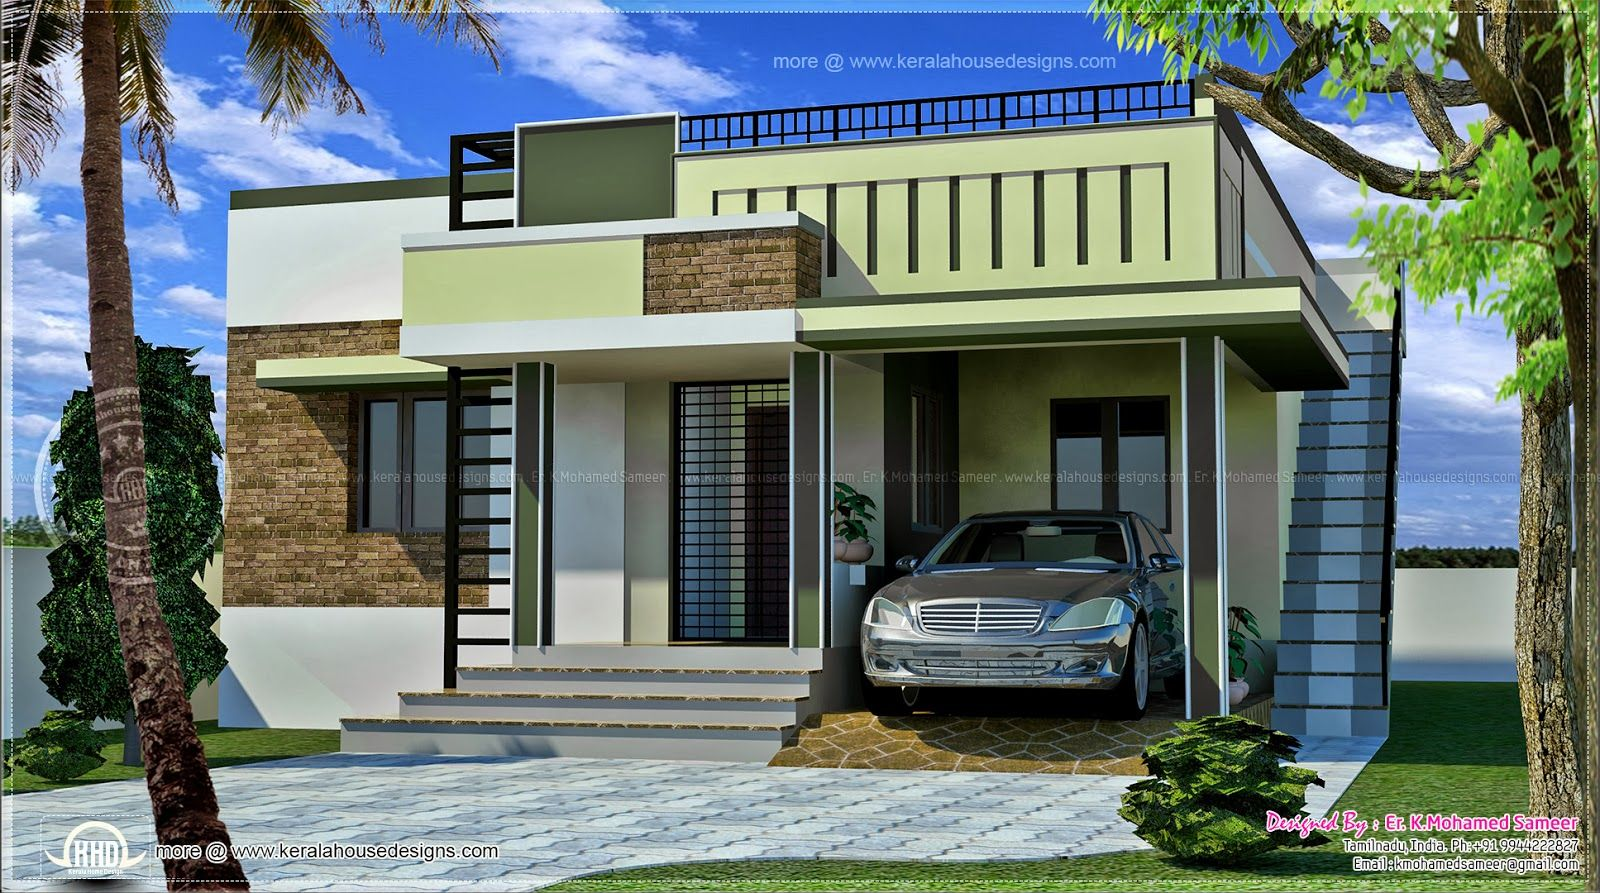 Elevation designs for single floor houses. Elevation designs for single floor houses   House list disign